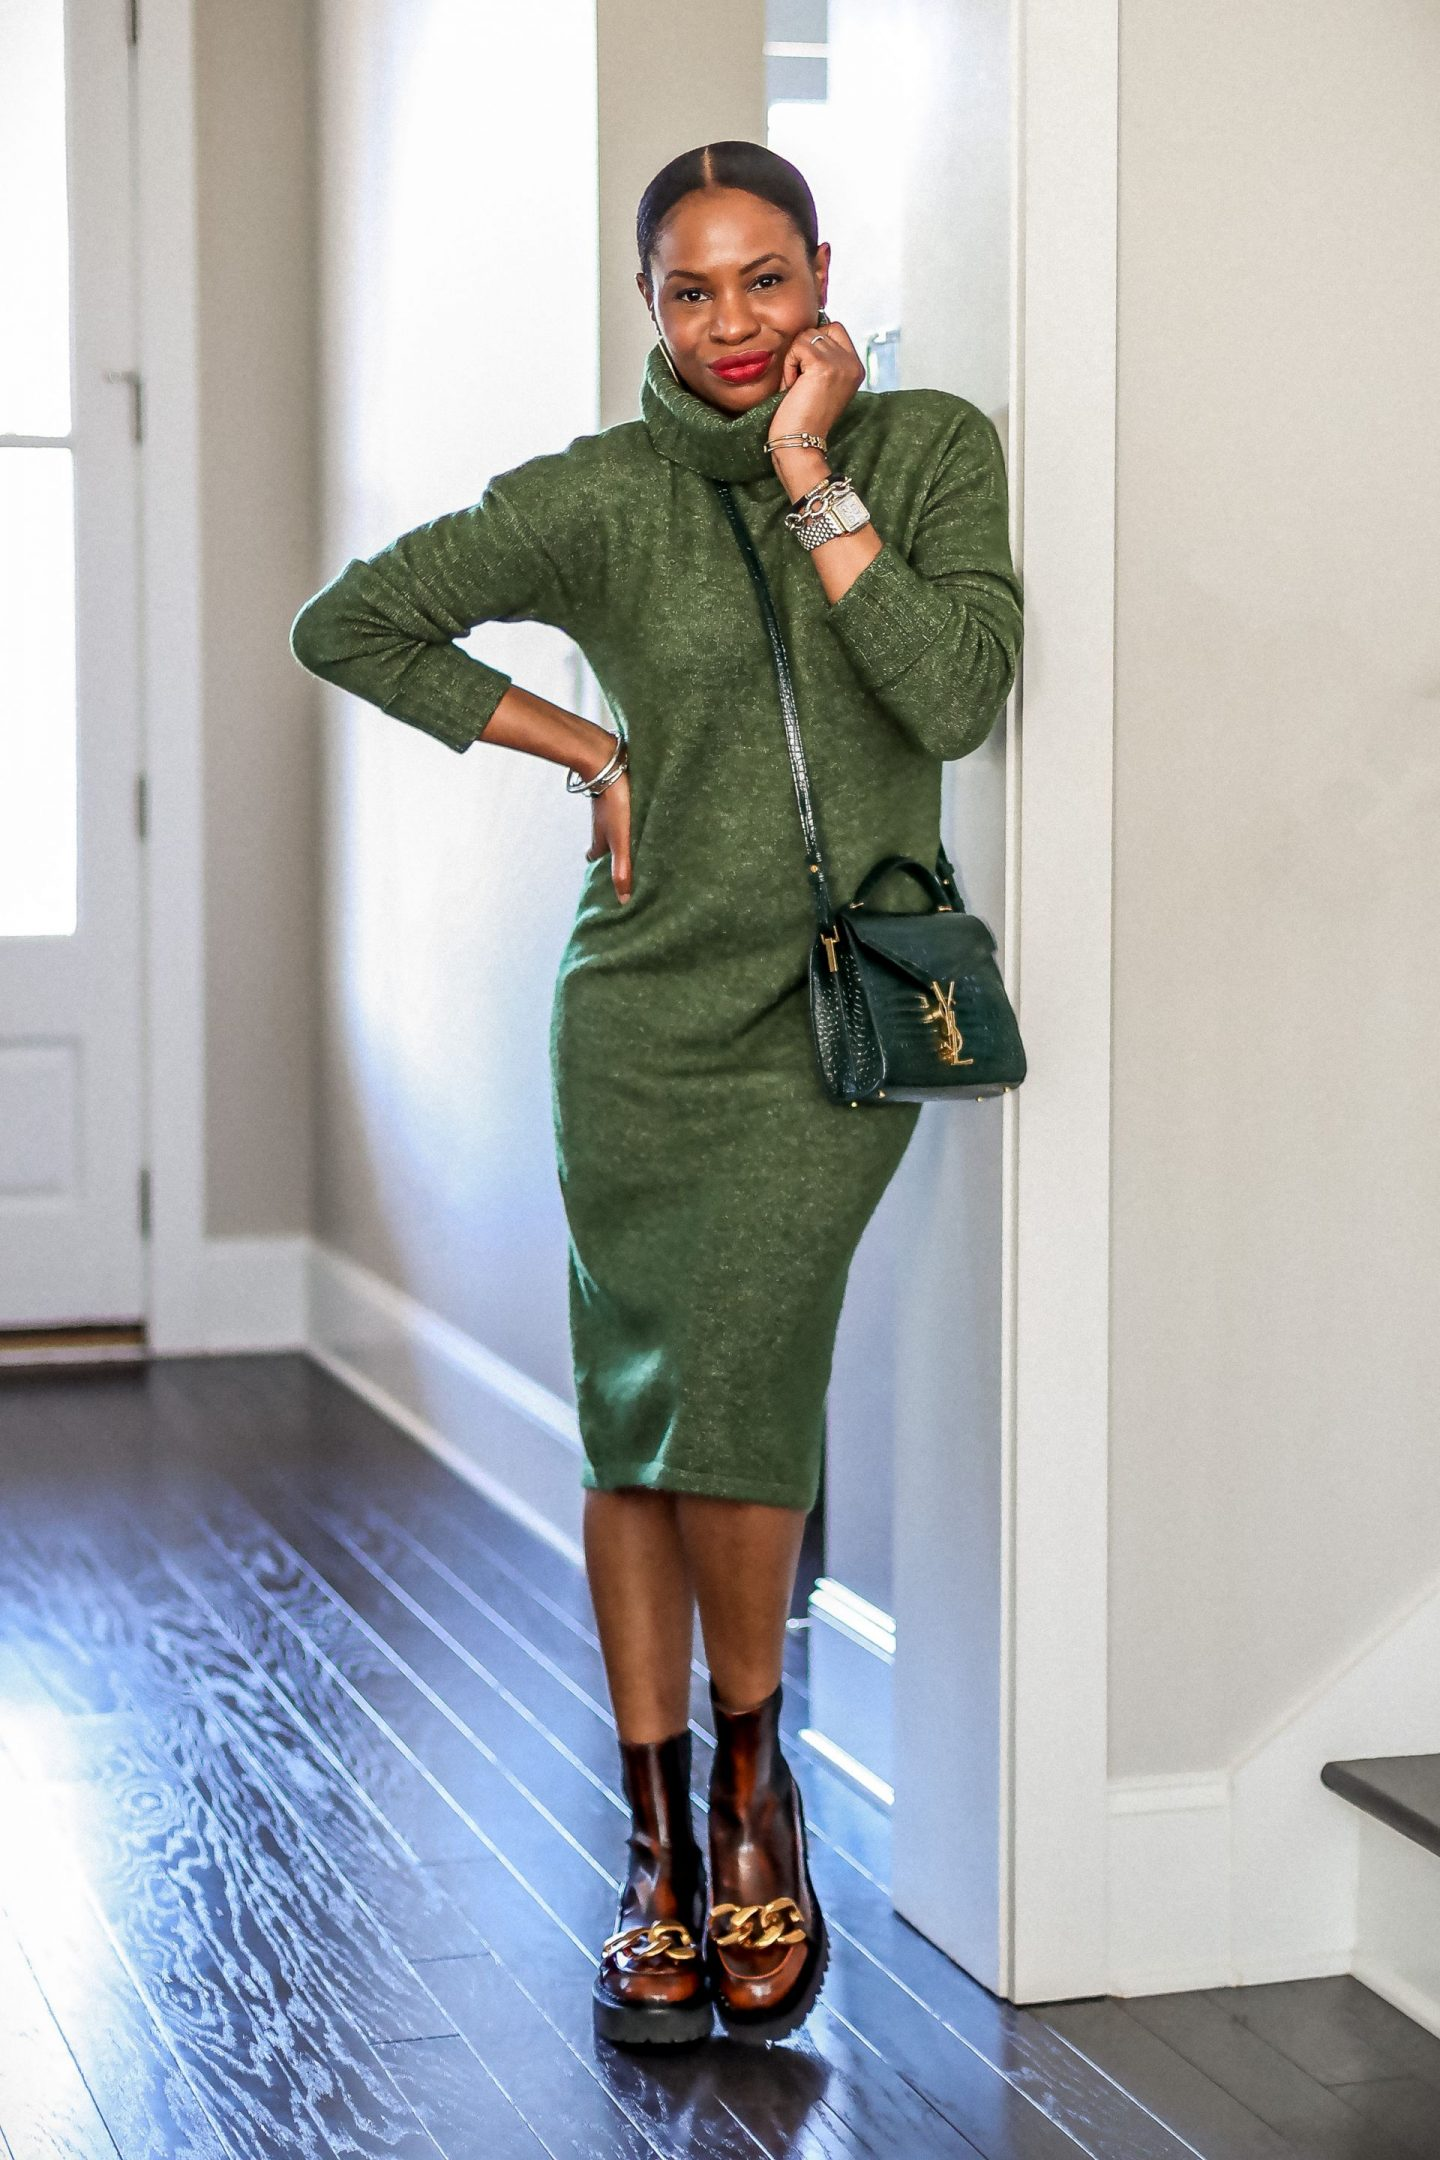 holiday alternative outfits for nye, what to wear at home for new year's eve, sweater dress, green dress, how to style a green dress